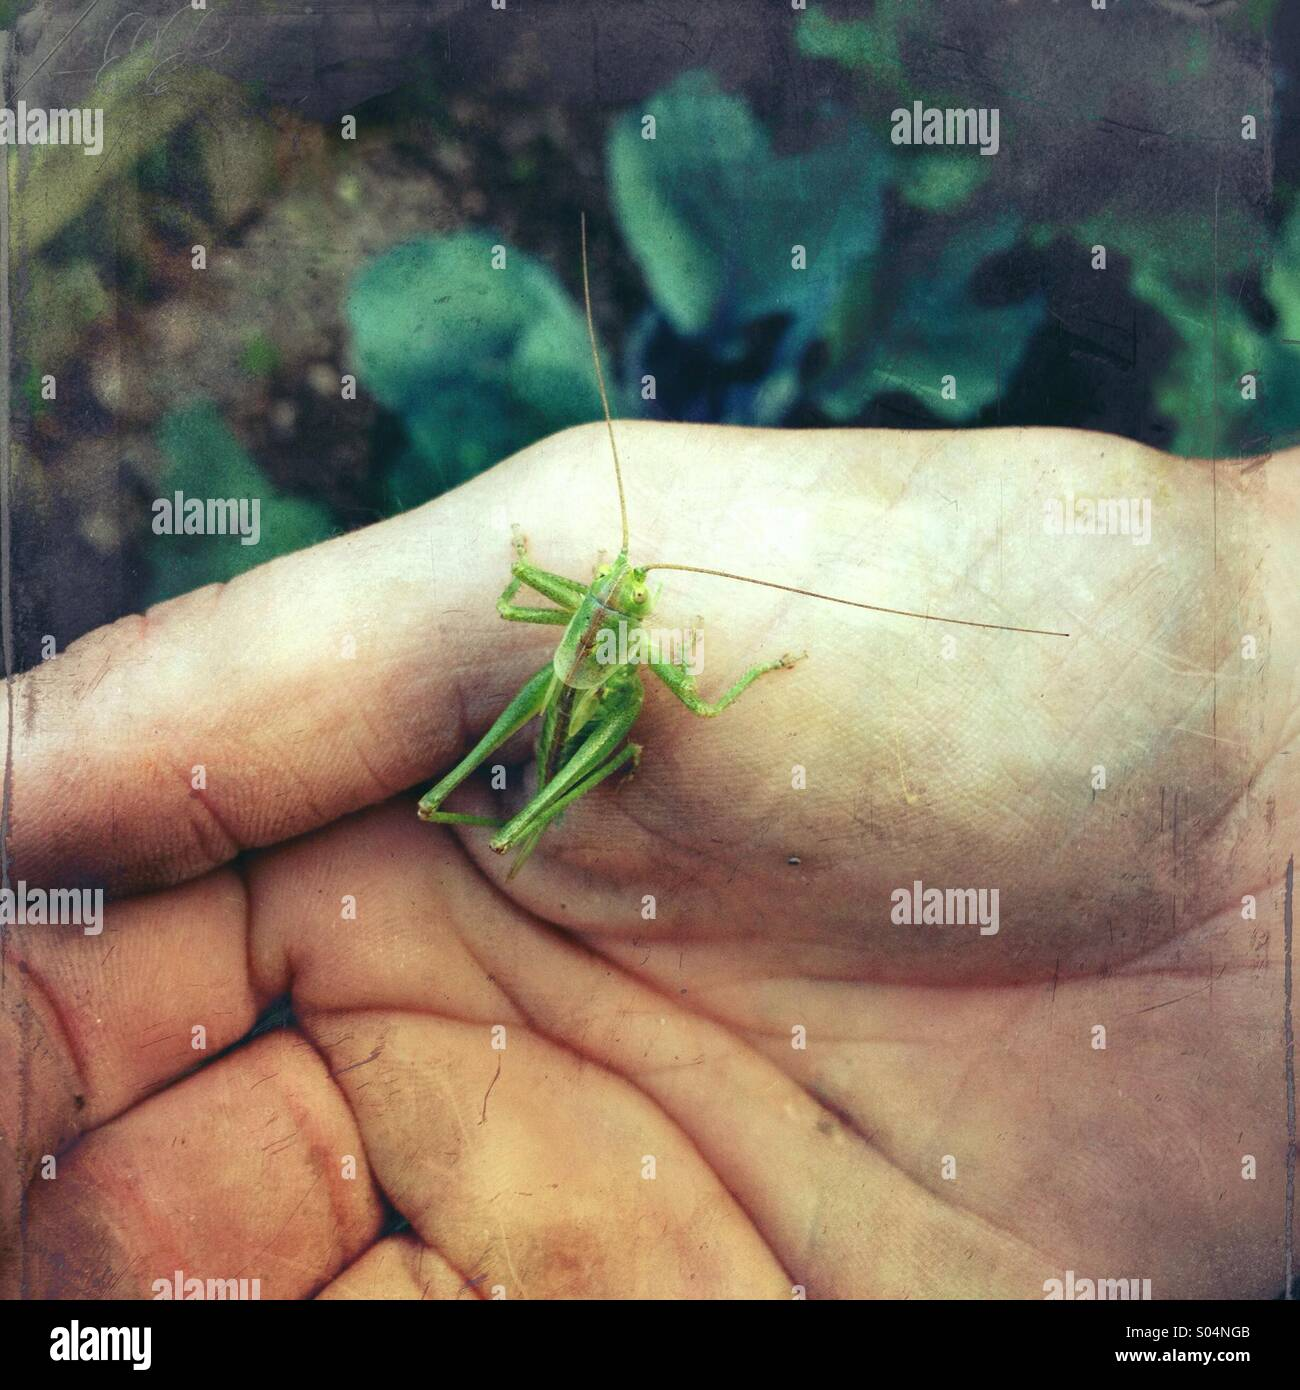 Man's hand holding a green grasshopper in garden - Stock Image